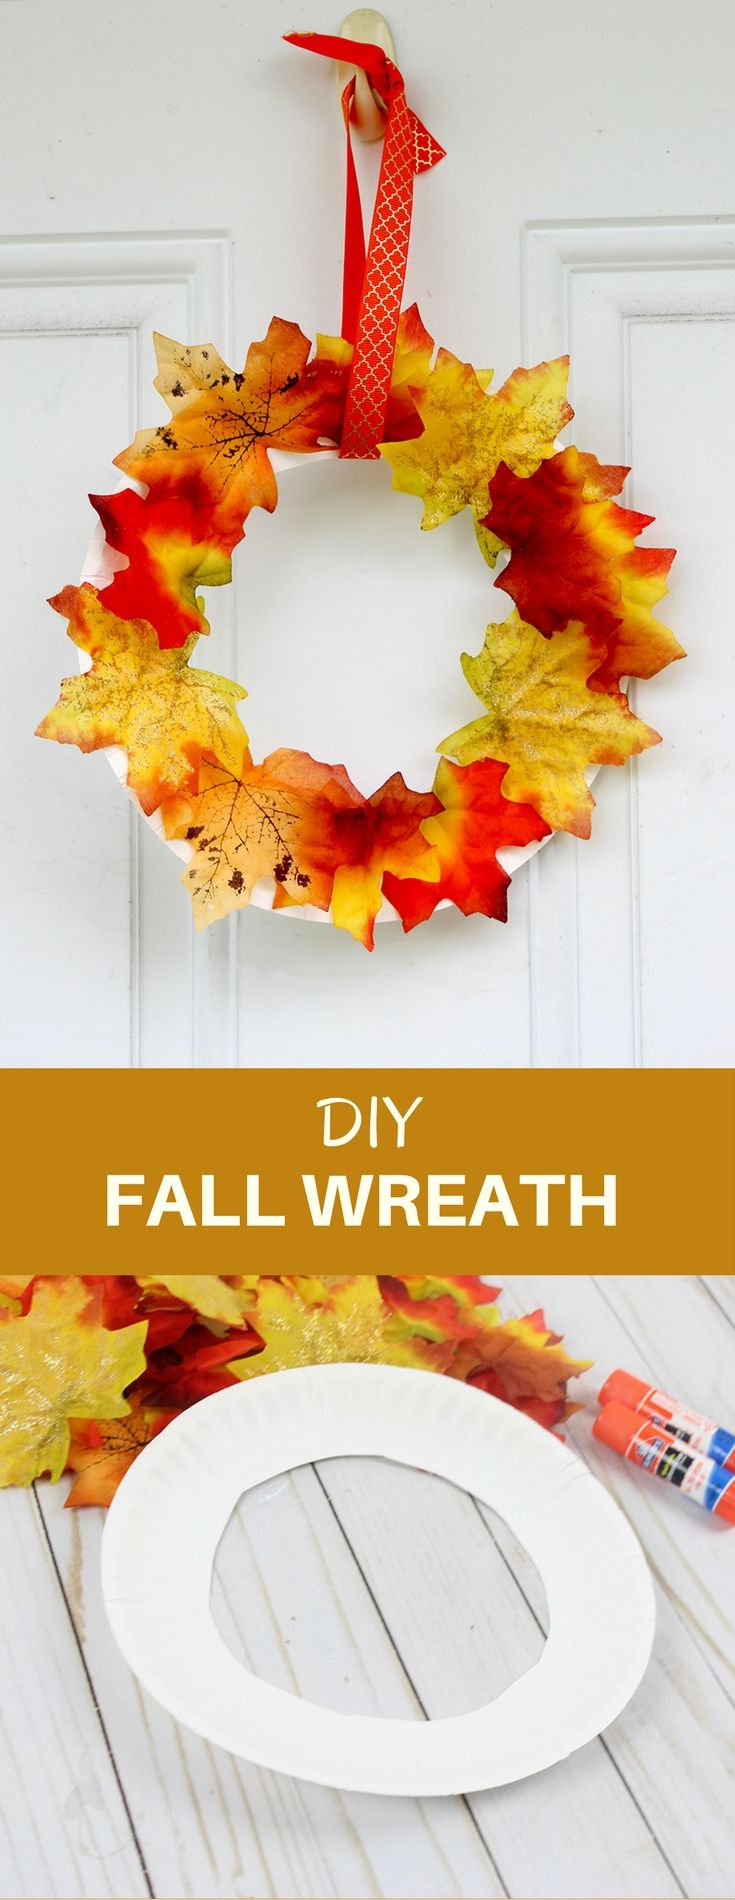 DIY Fall Wreath: A Dollar Store Kid's Craft